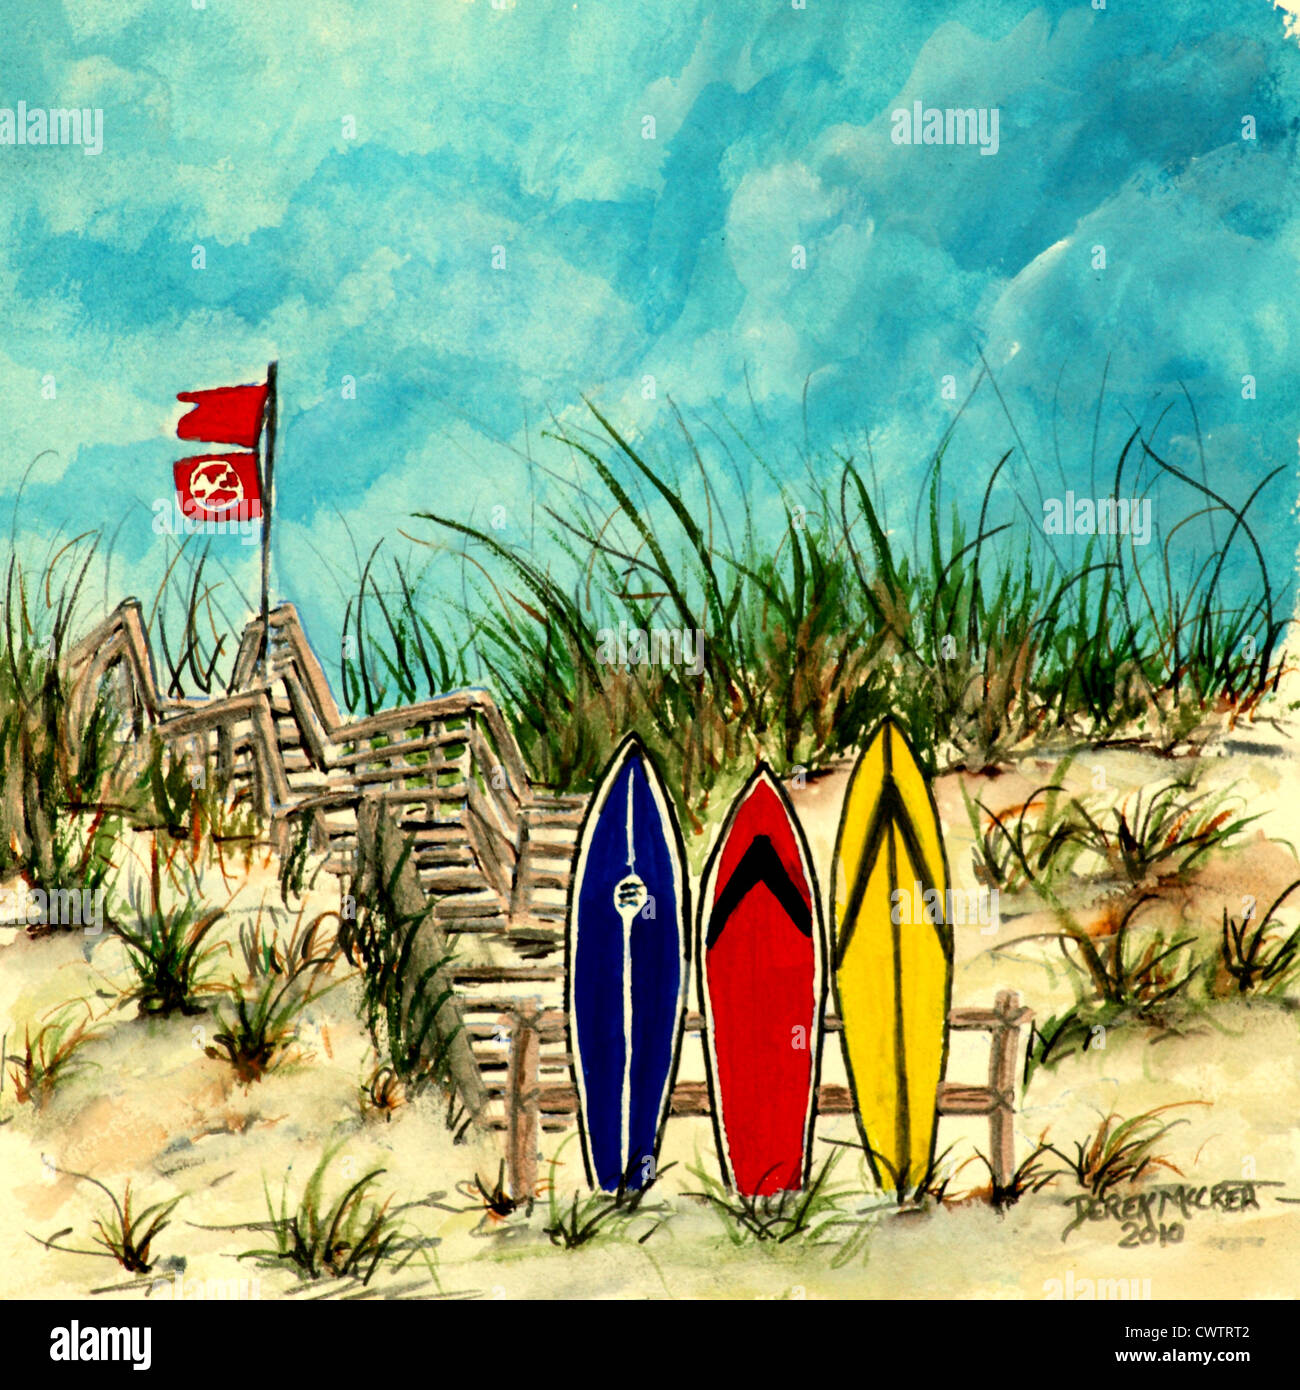 Painting A Surfboard With Acrylic Paint